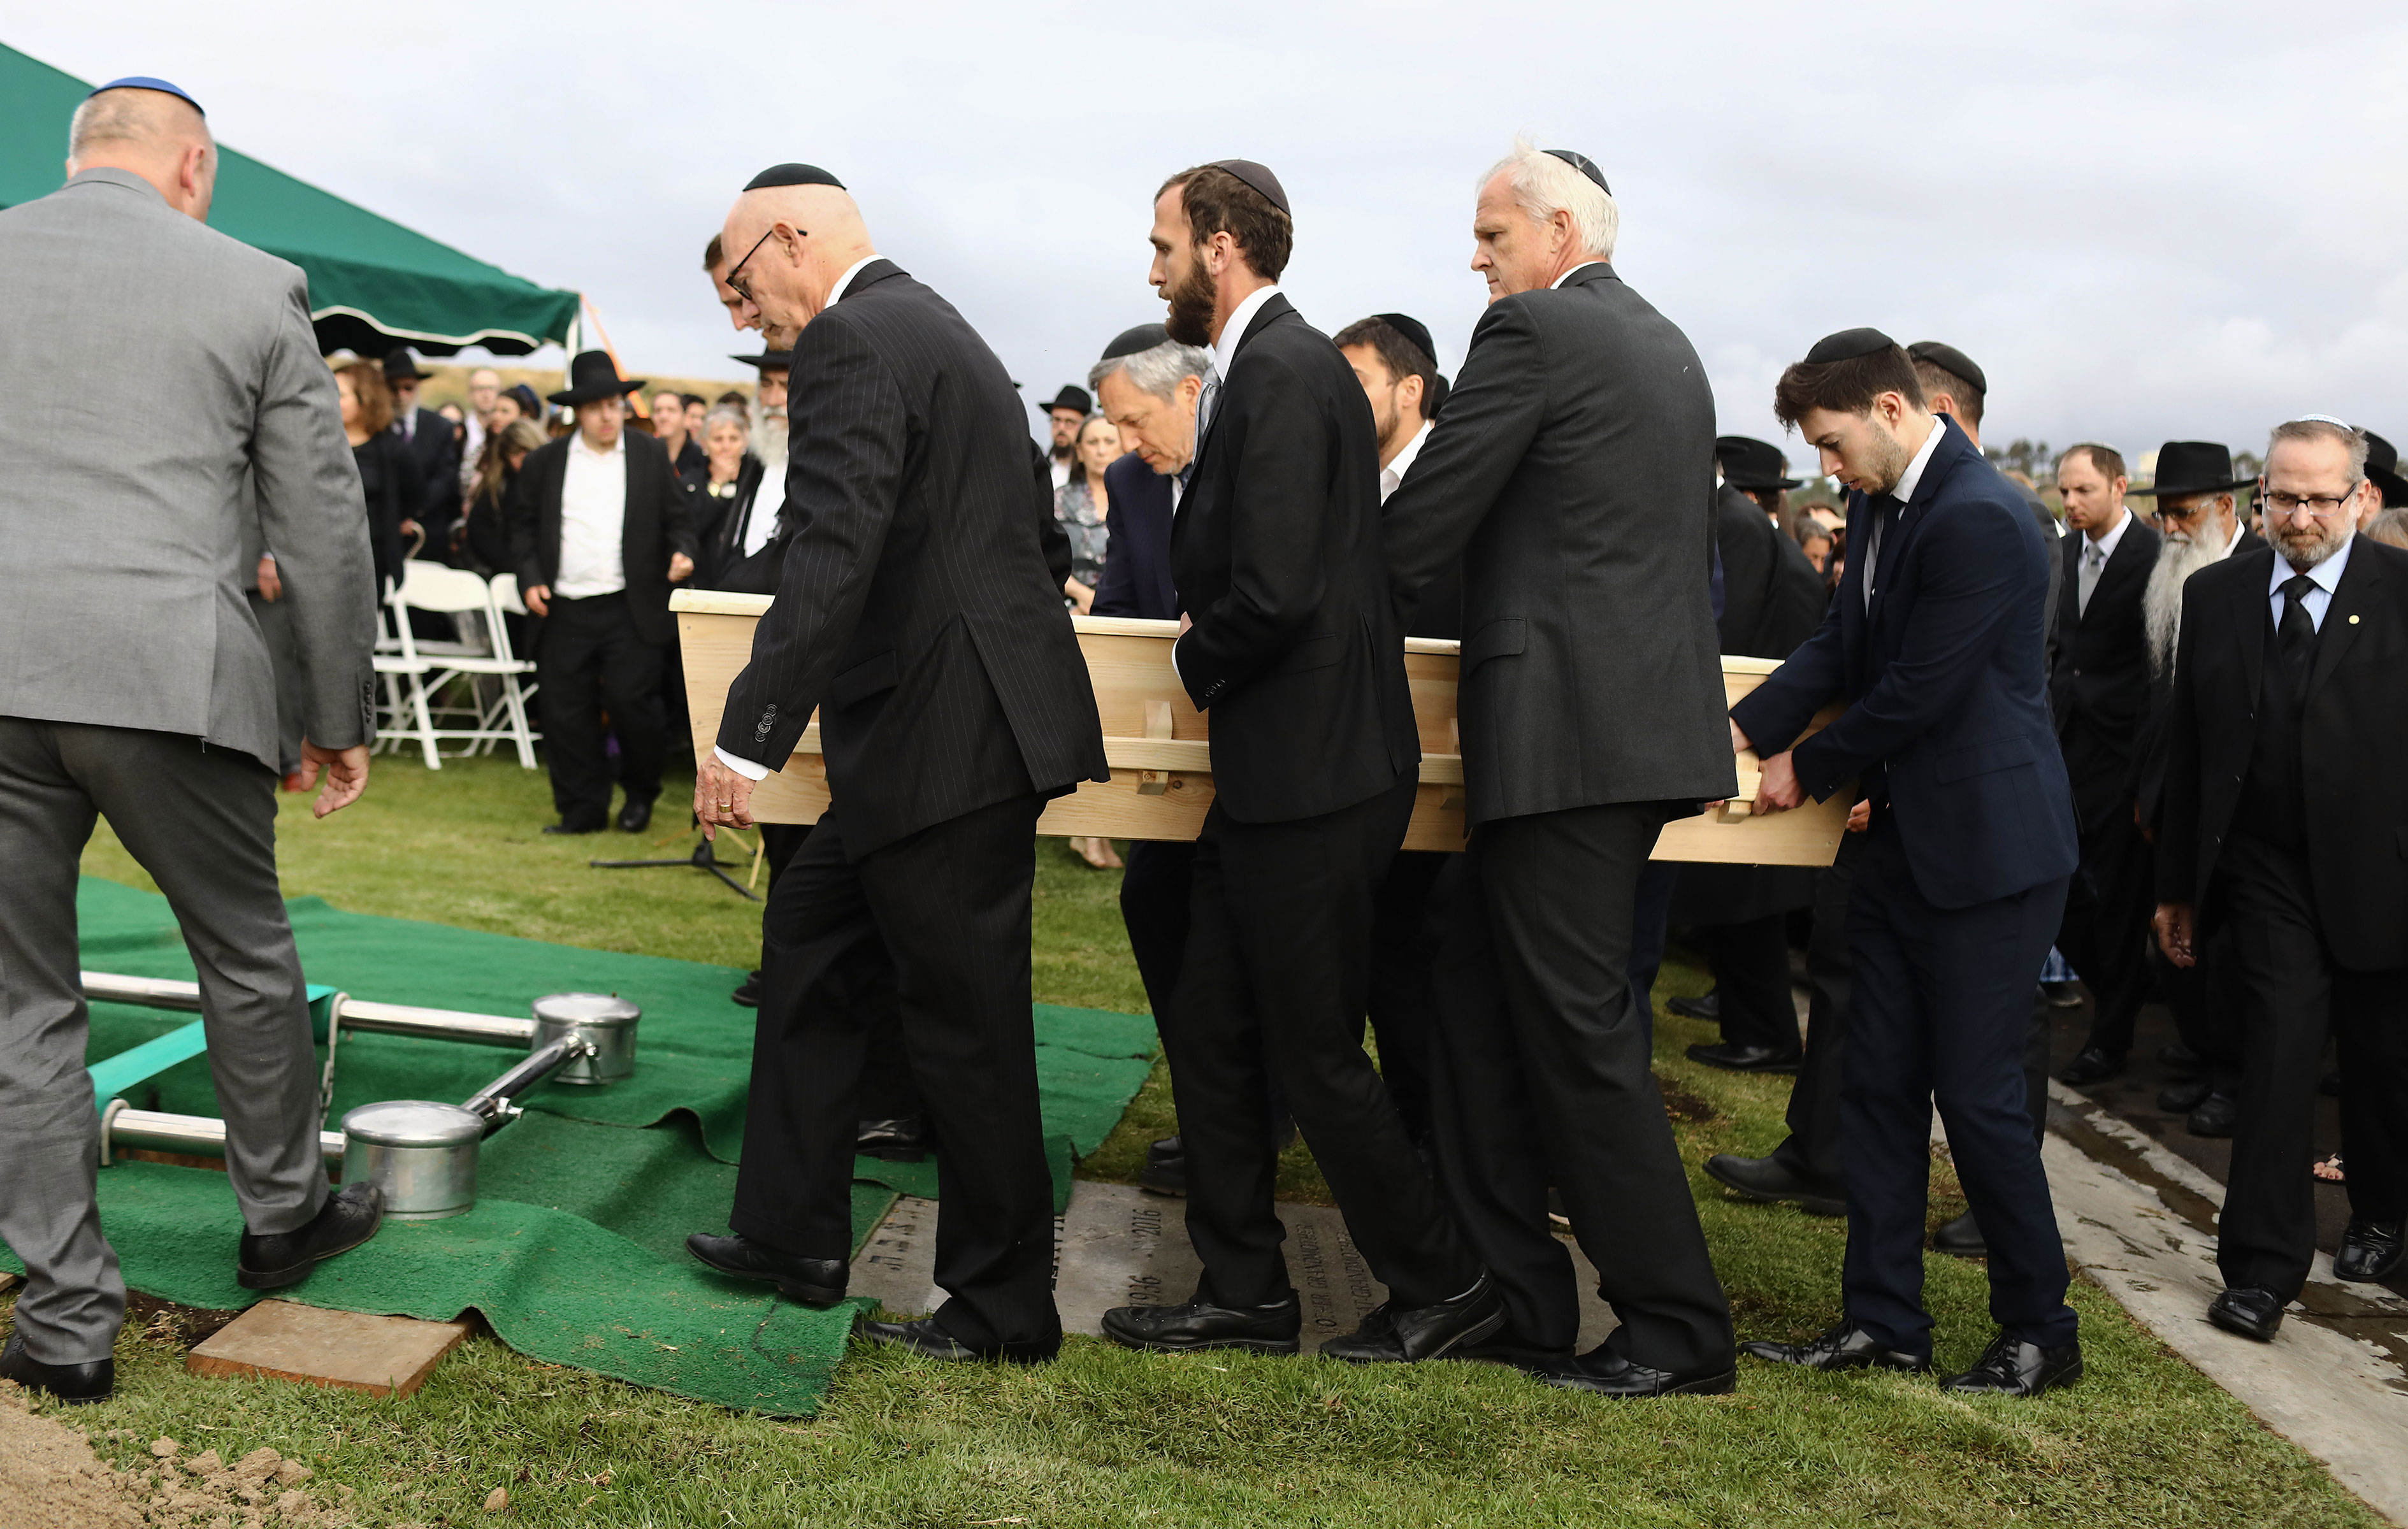 Pallbearers carry the casket of the shooting victim from the Chabad of Poway synagogue